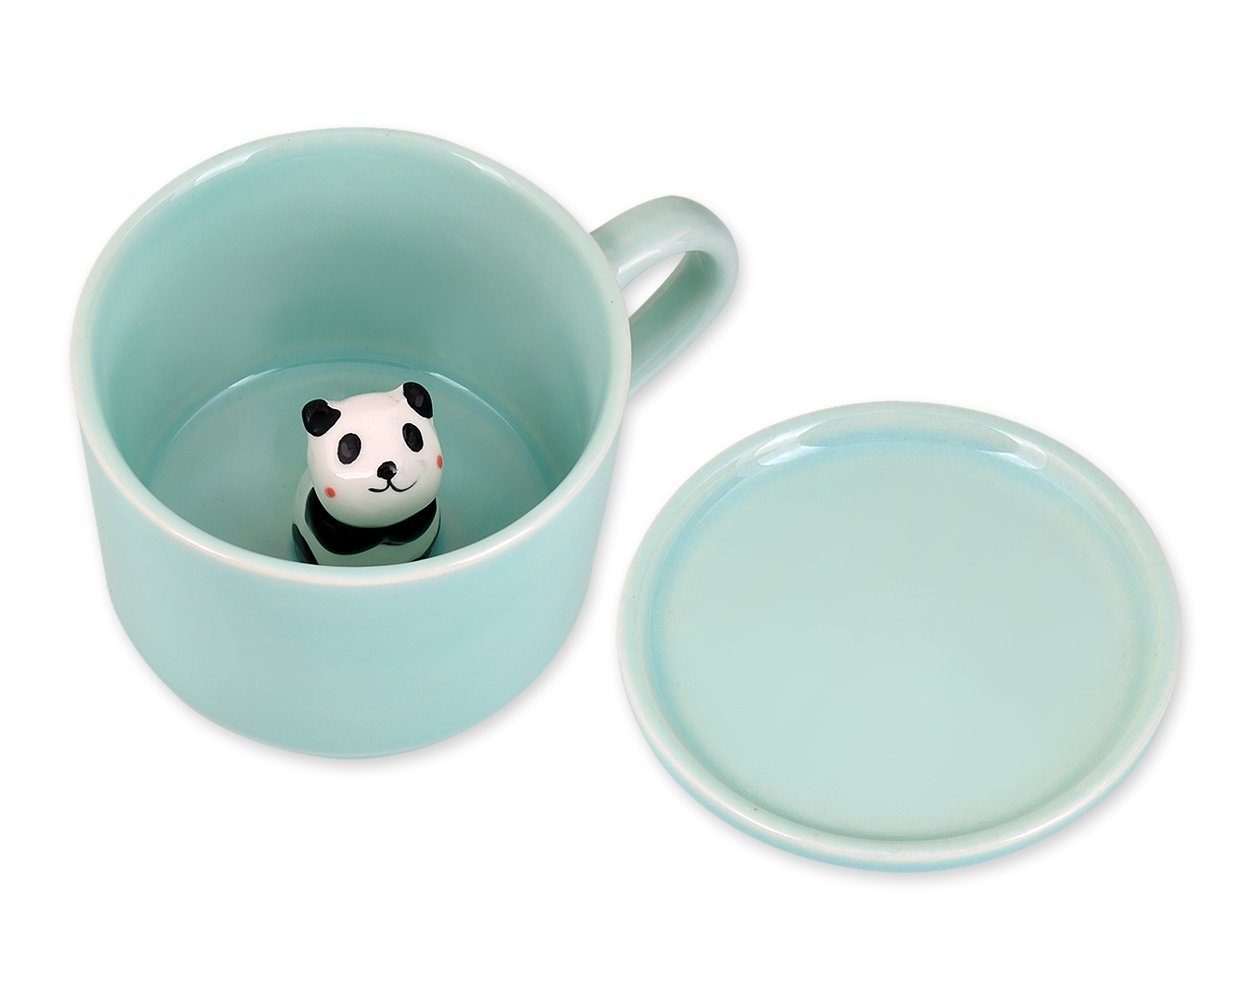 Ace Select Cute 3D Animal Milk Cup Small 8oz Ceramic Espresso Coffee Mug Novelty Tea Cup with Coaster Lovely Gift for Kids Boys Girls Girlfriend - Panda